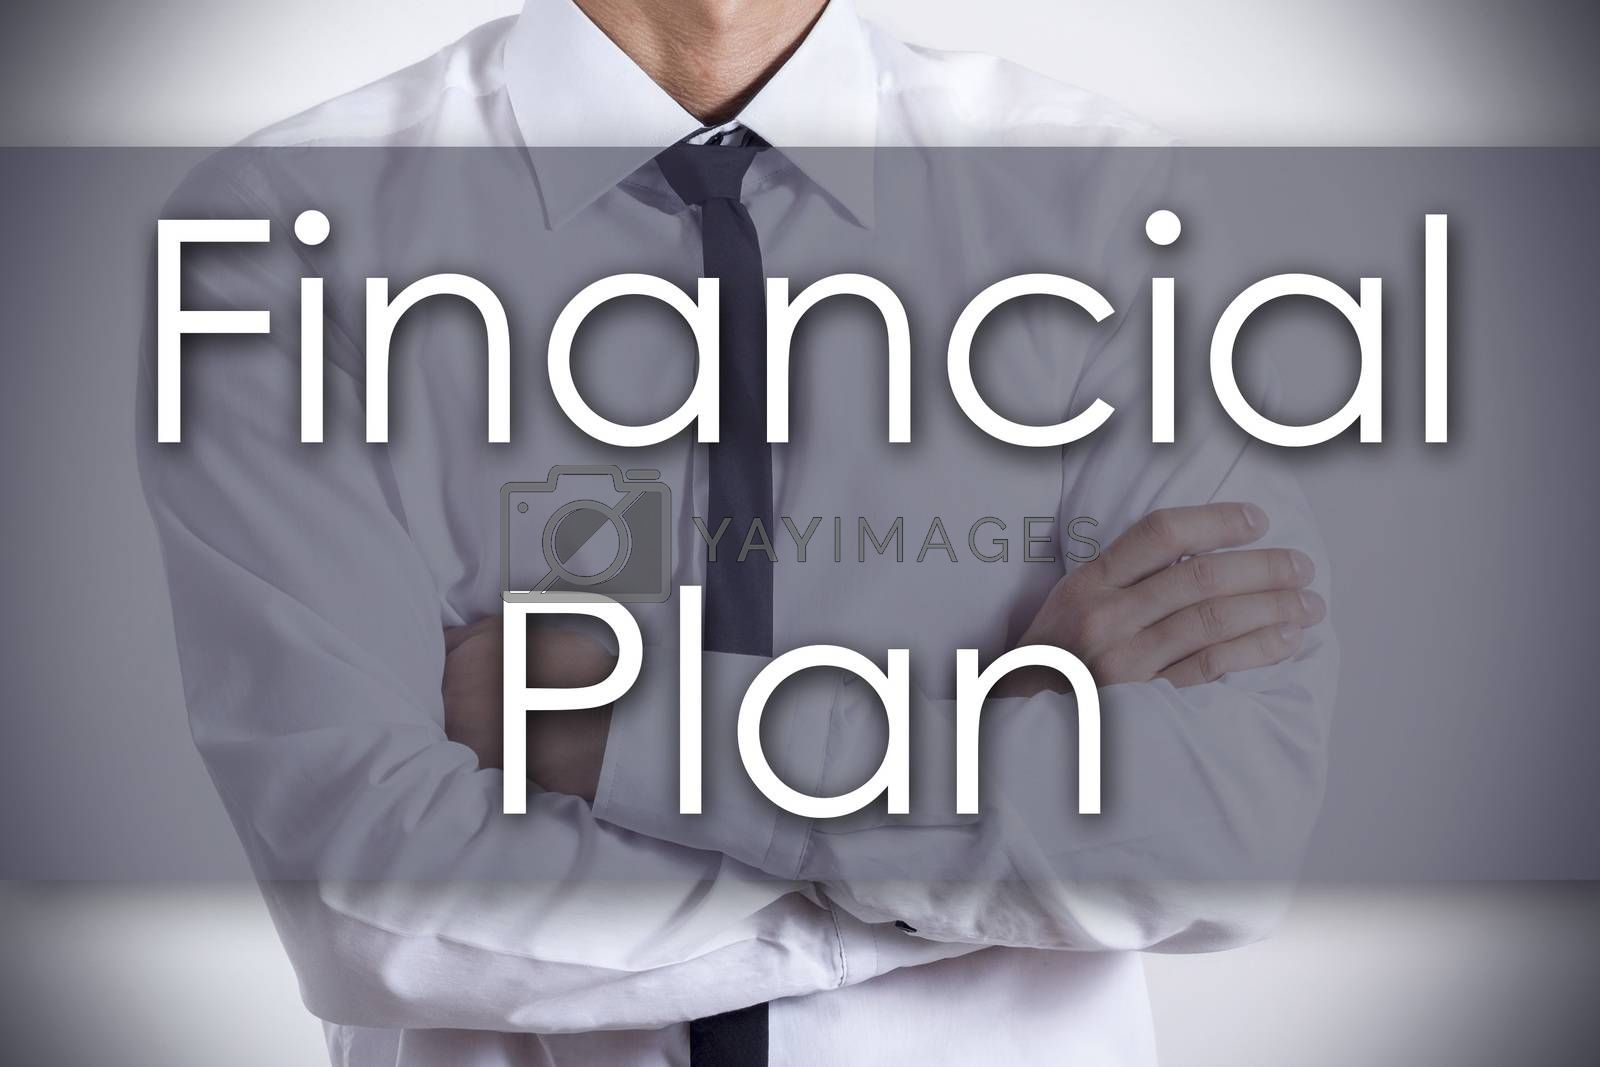 Financial Plan - Closeup of a young businessman with text - business concept - horizontal image